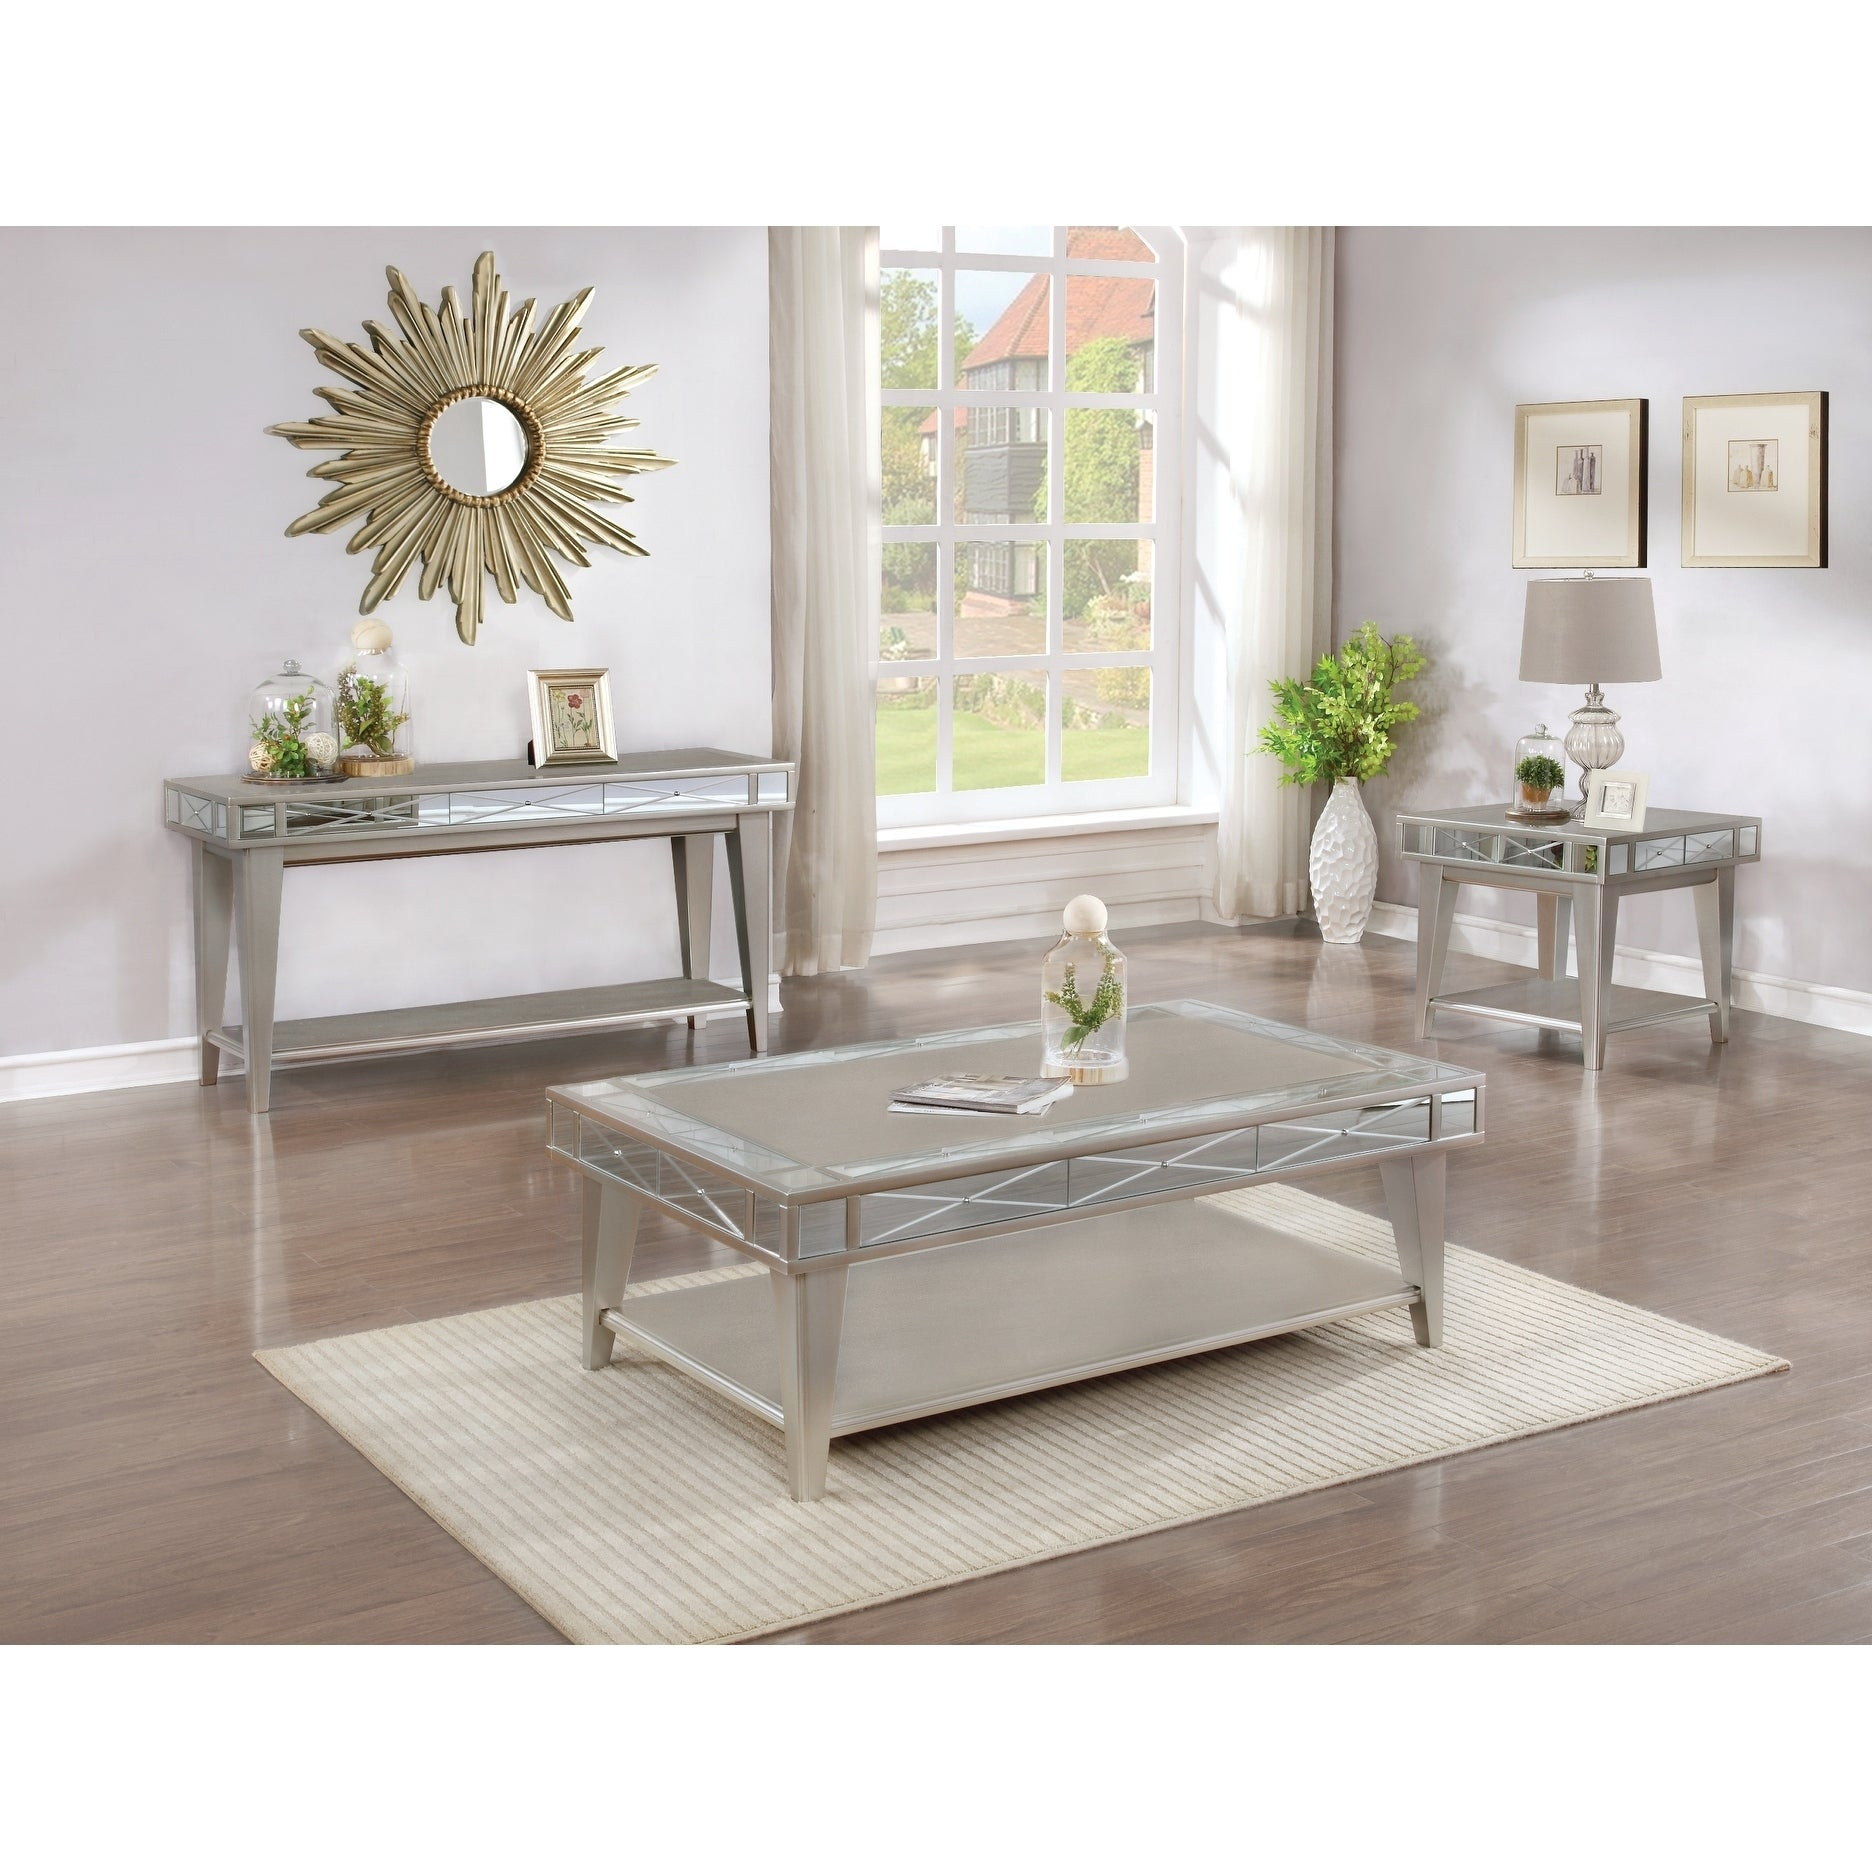 Bling Mirrored Coffee Table Free Shipping Today 21339034